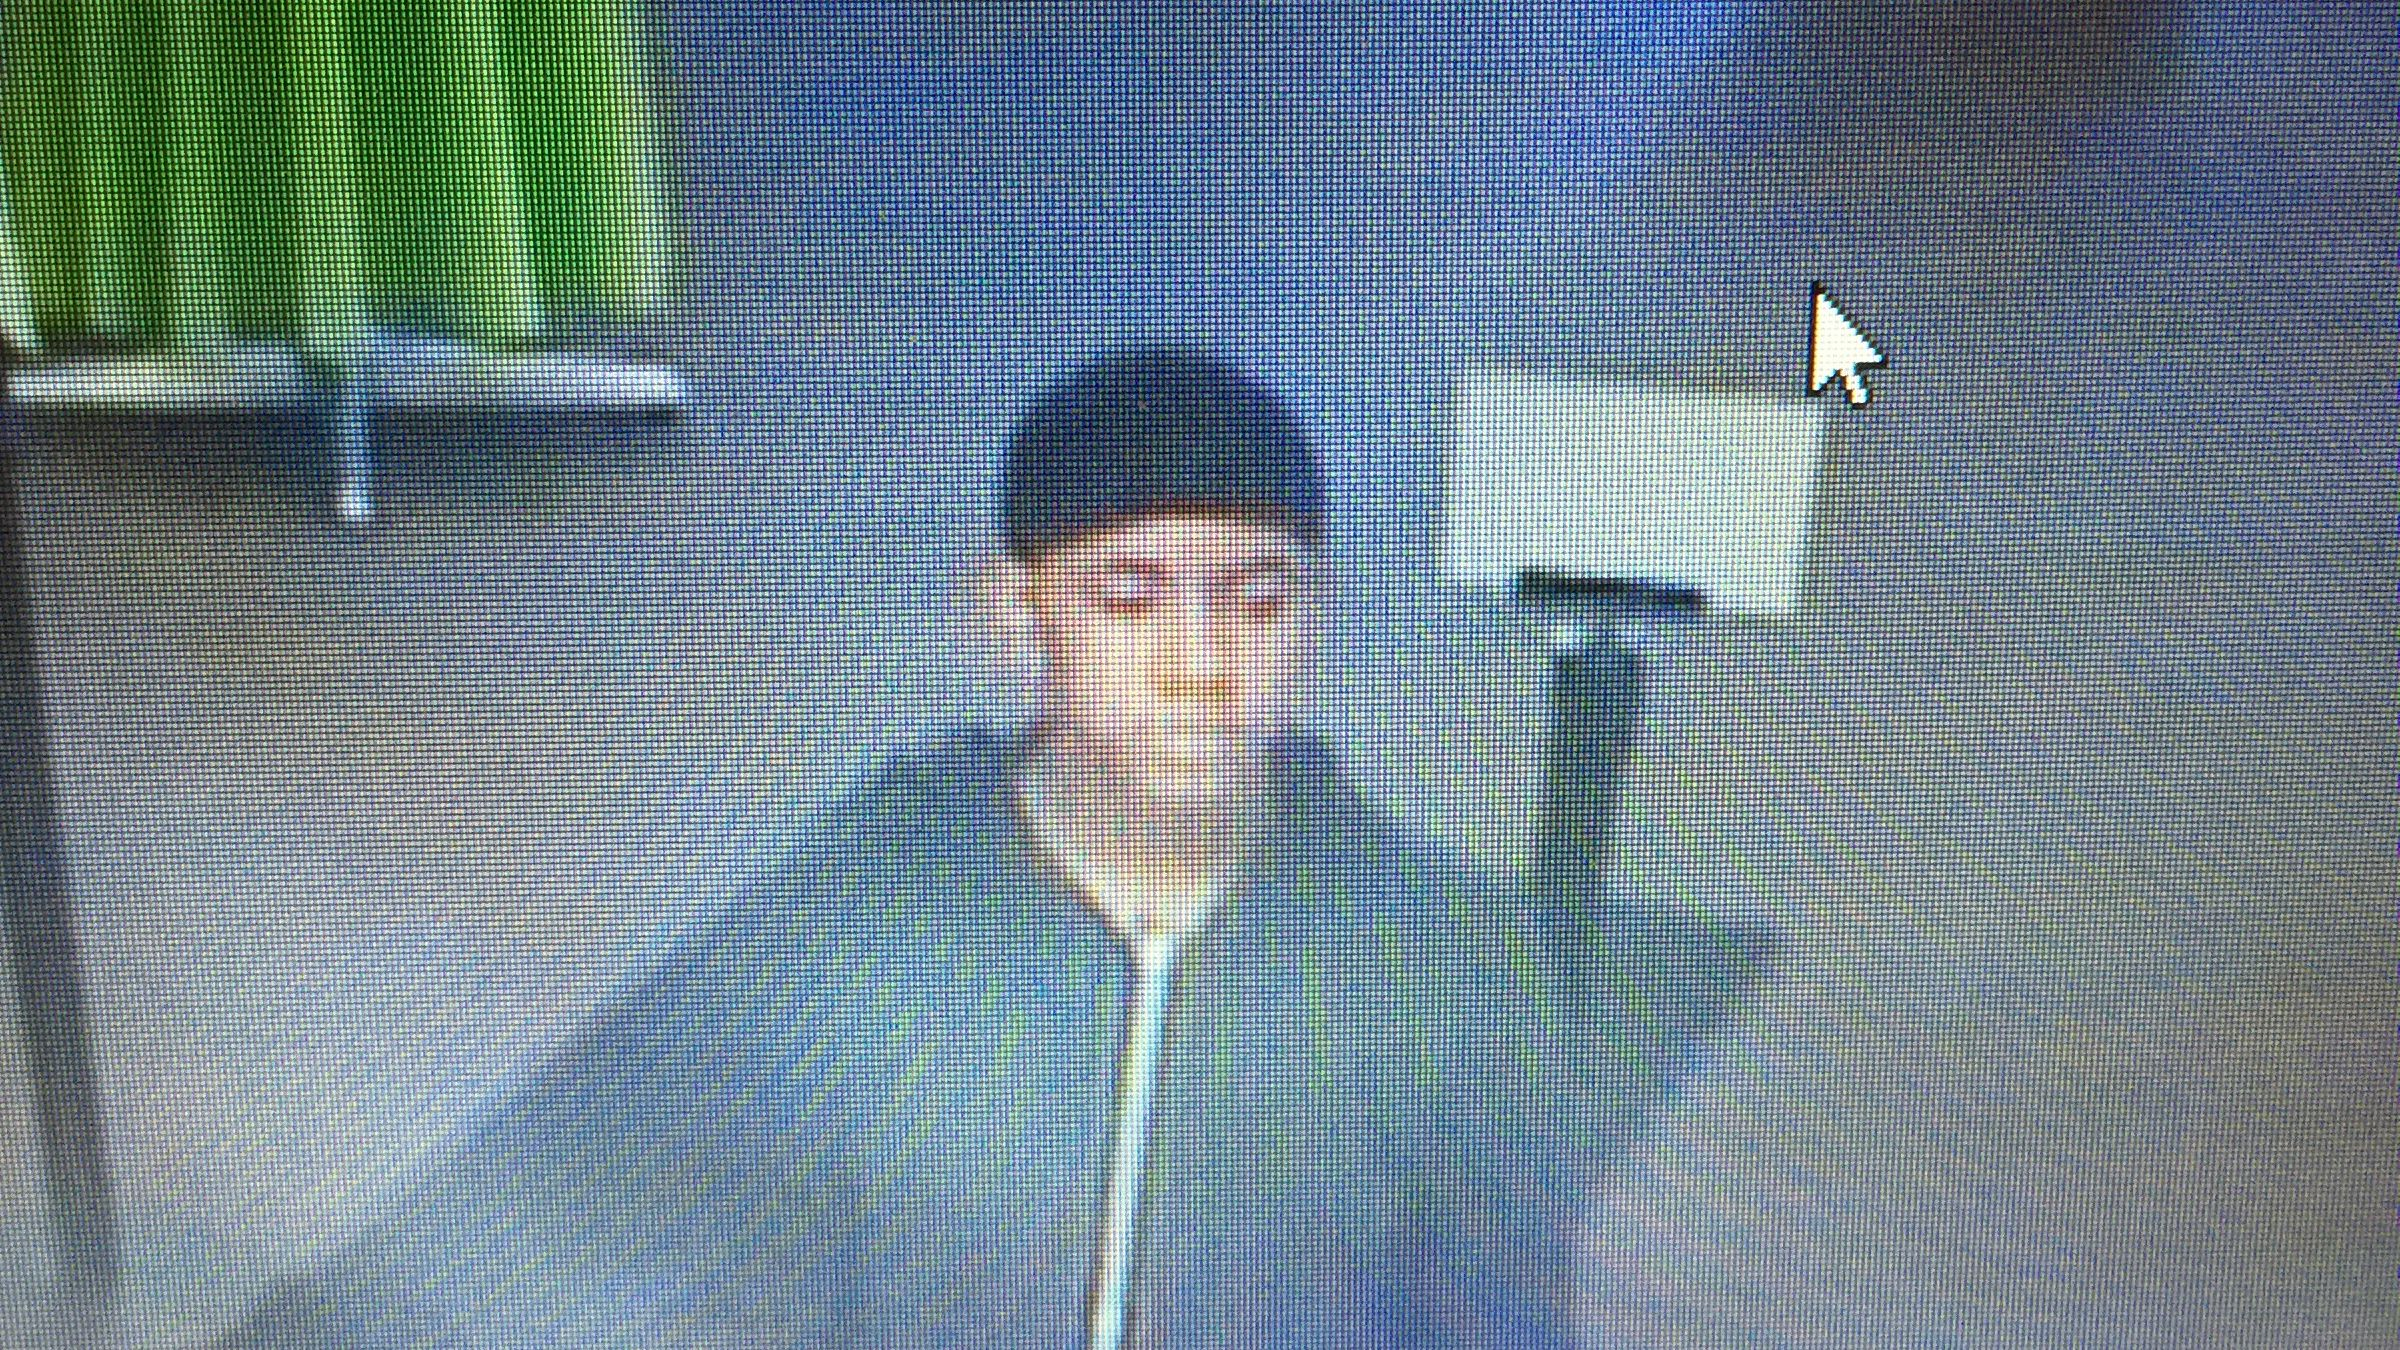 Massillon Police want the identity of the man who is considered a suspect in the robbery of a Huntington Bank